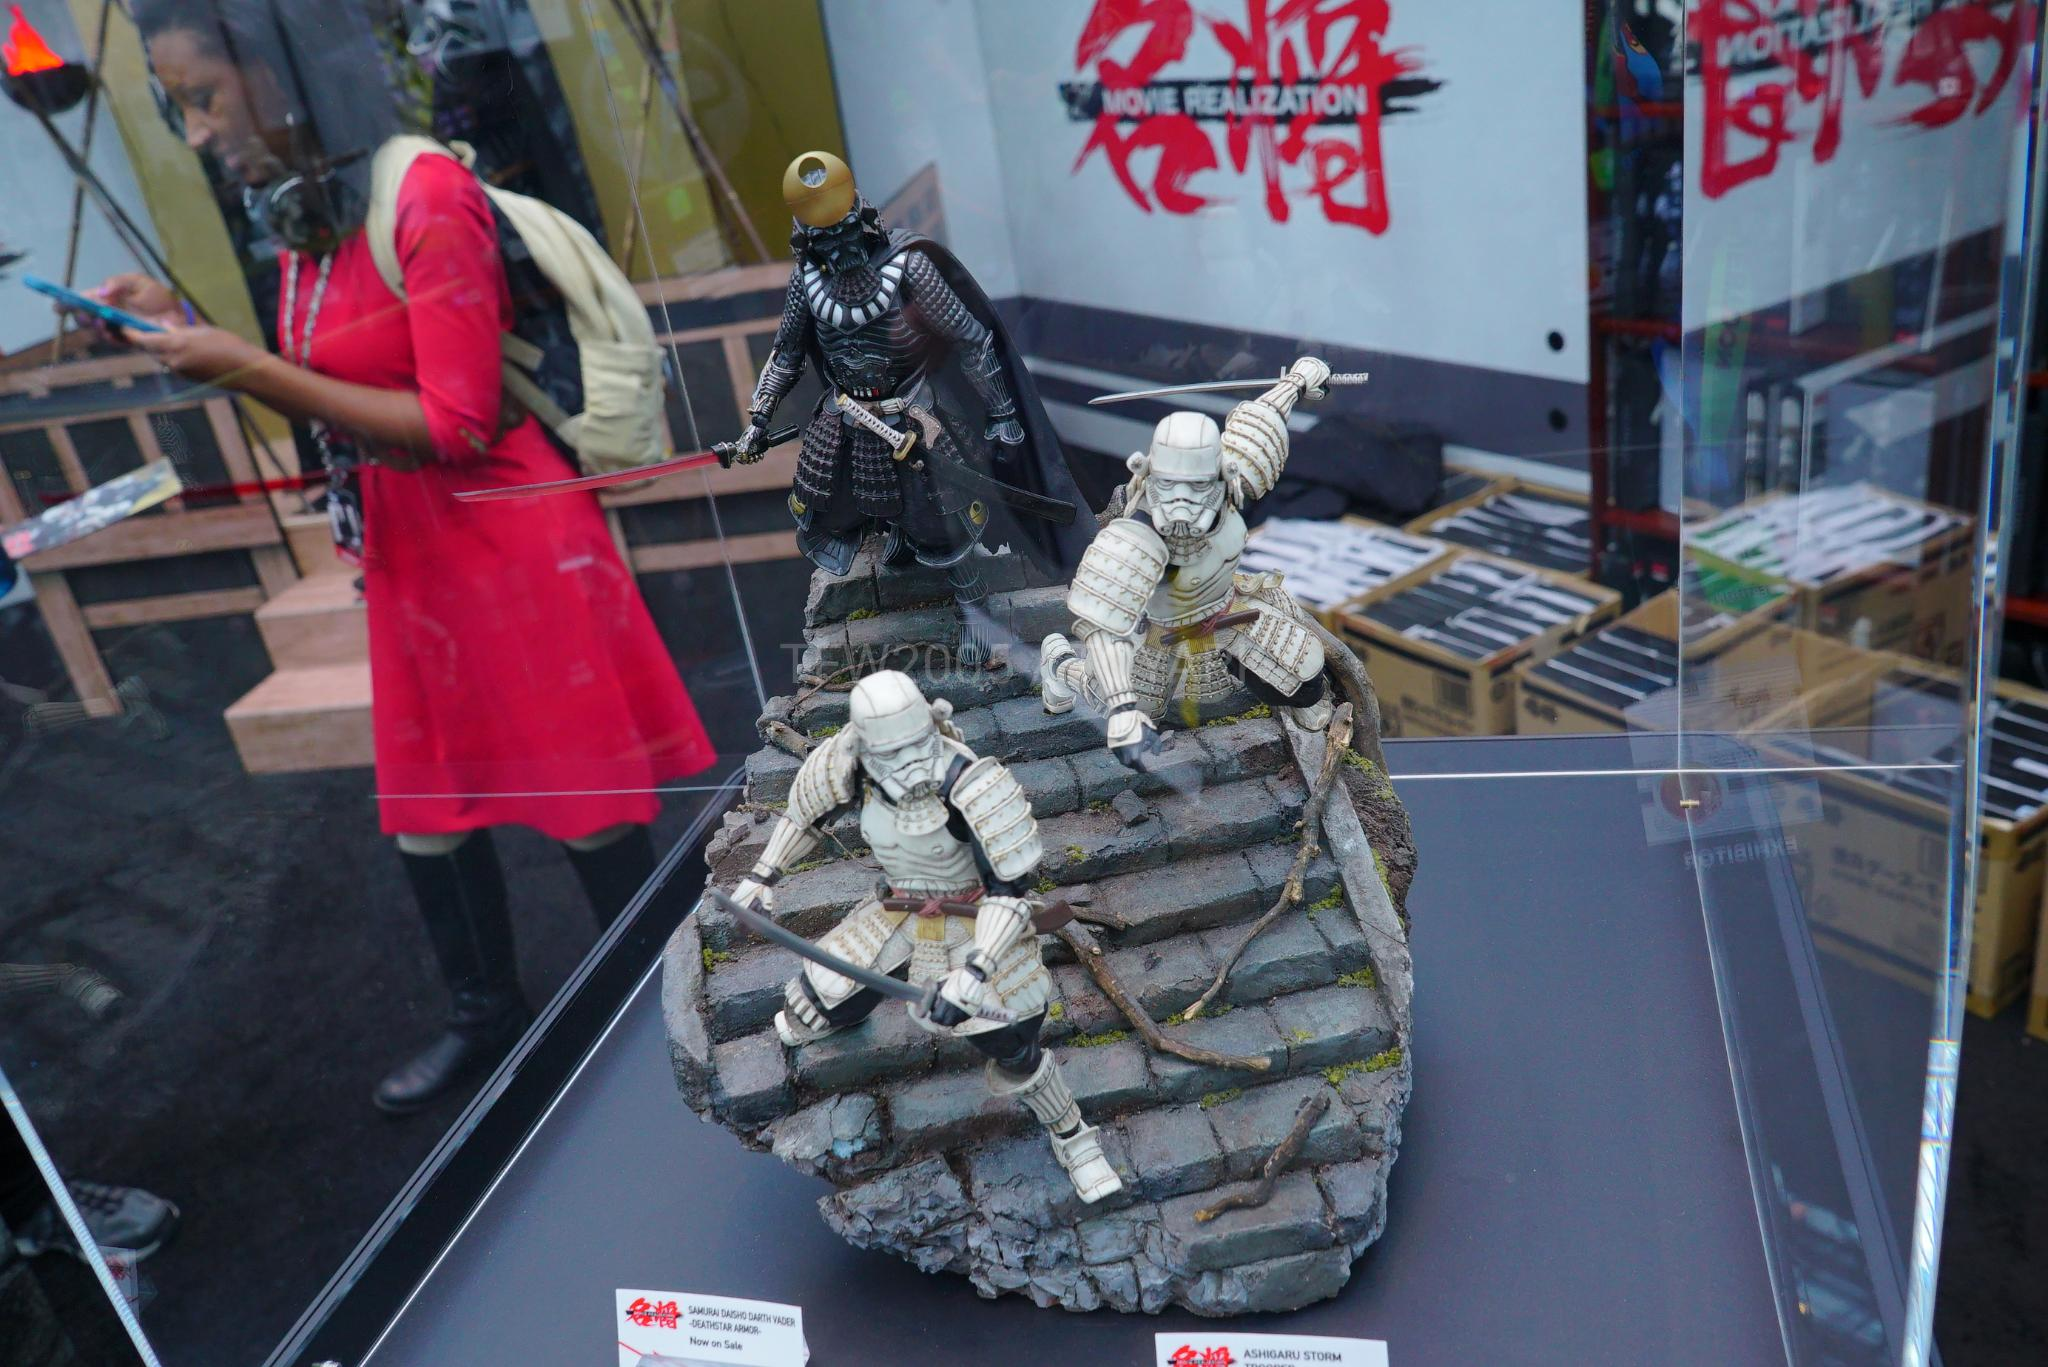 NEW YORK COMIC CON 2019 NYCC-2019-Star-Wars-Realization-021